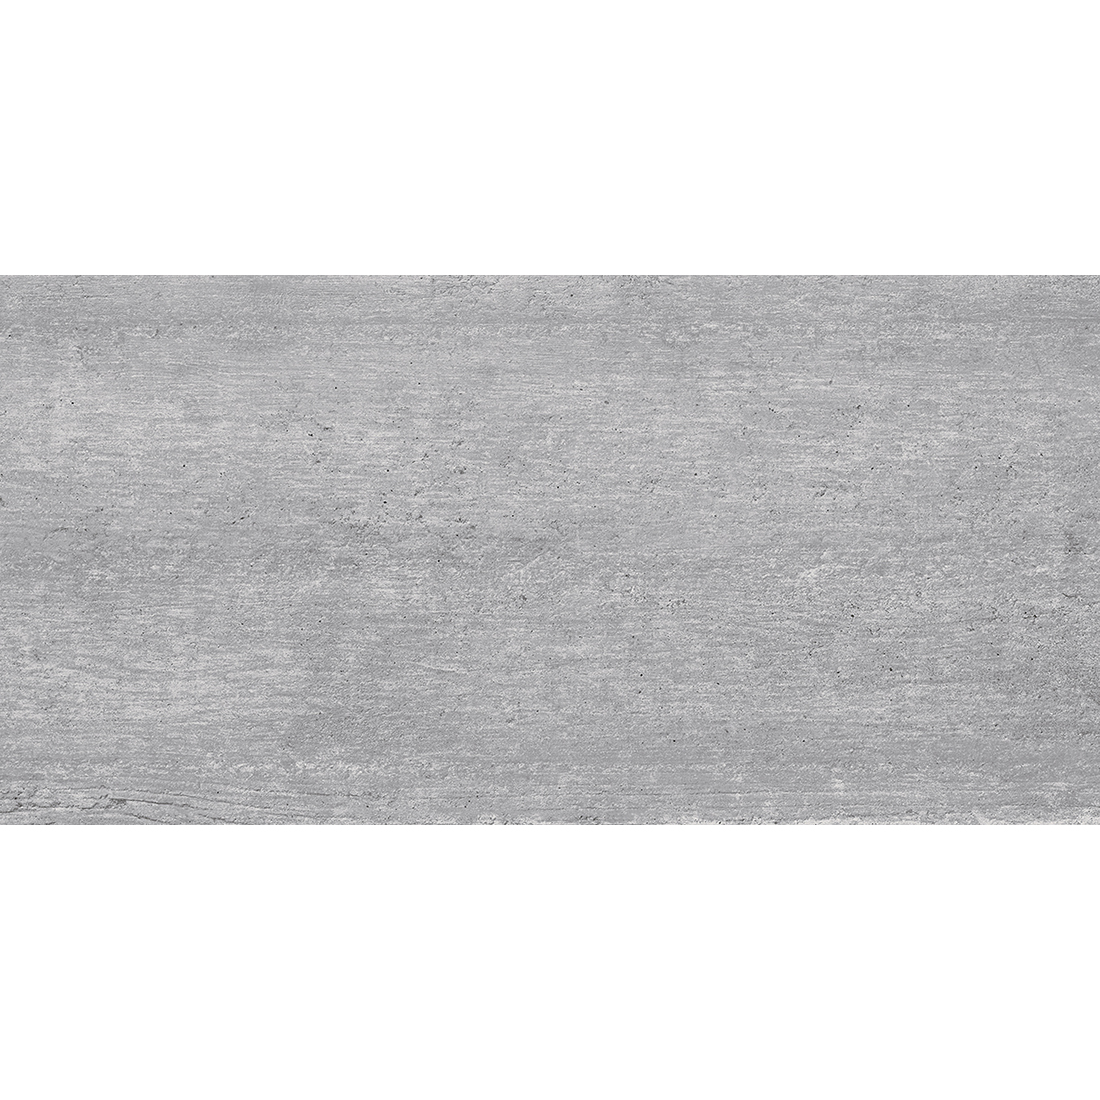 Cemento Rustico 30x60 Dark Grey Matt 1